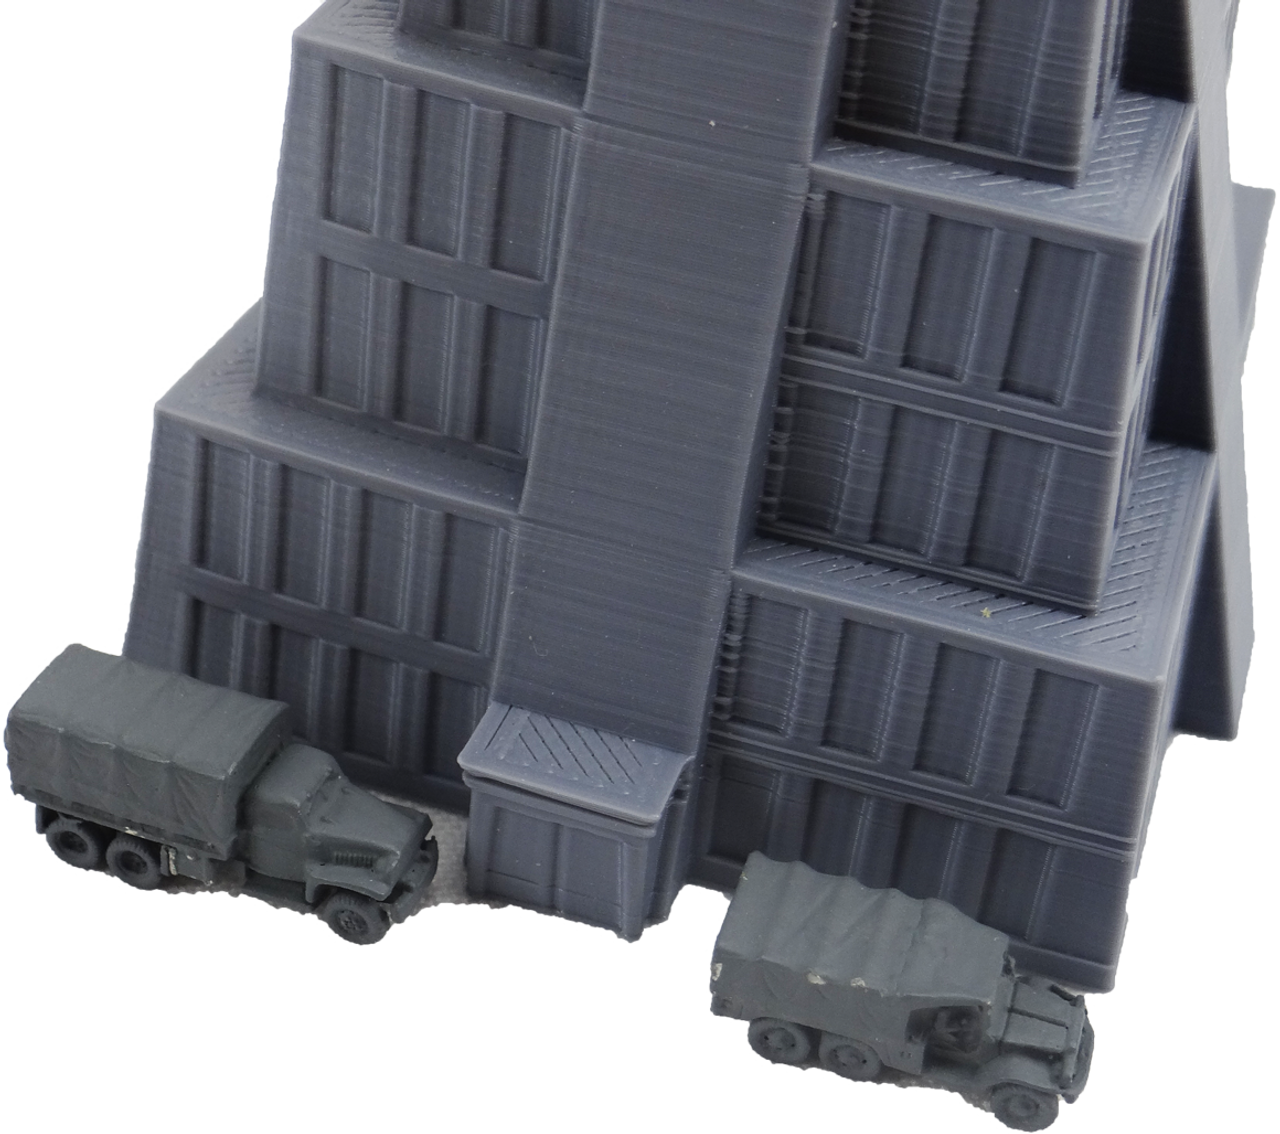 6mm Zigg Building front view with truck